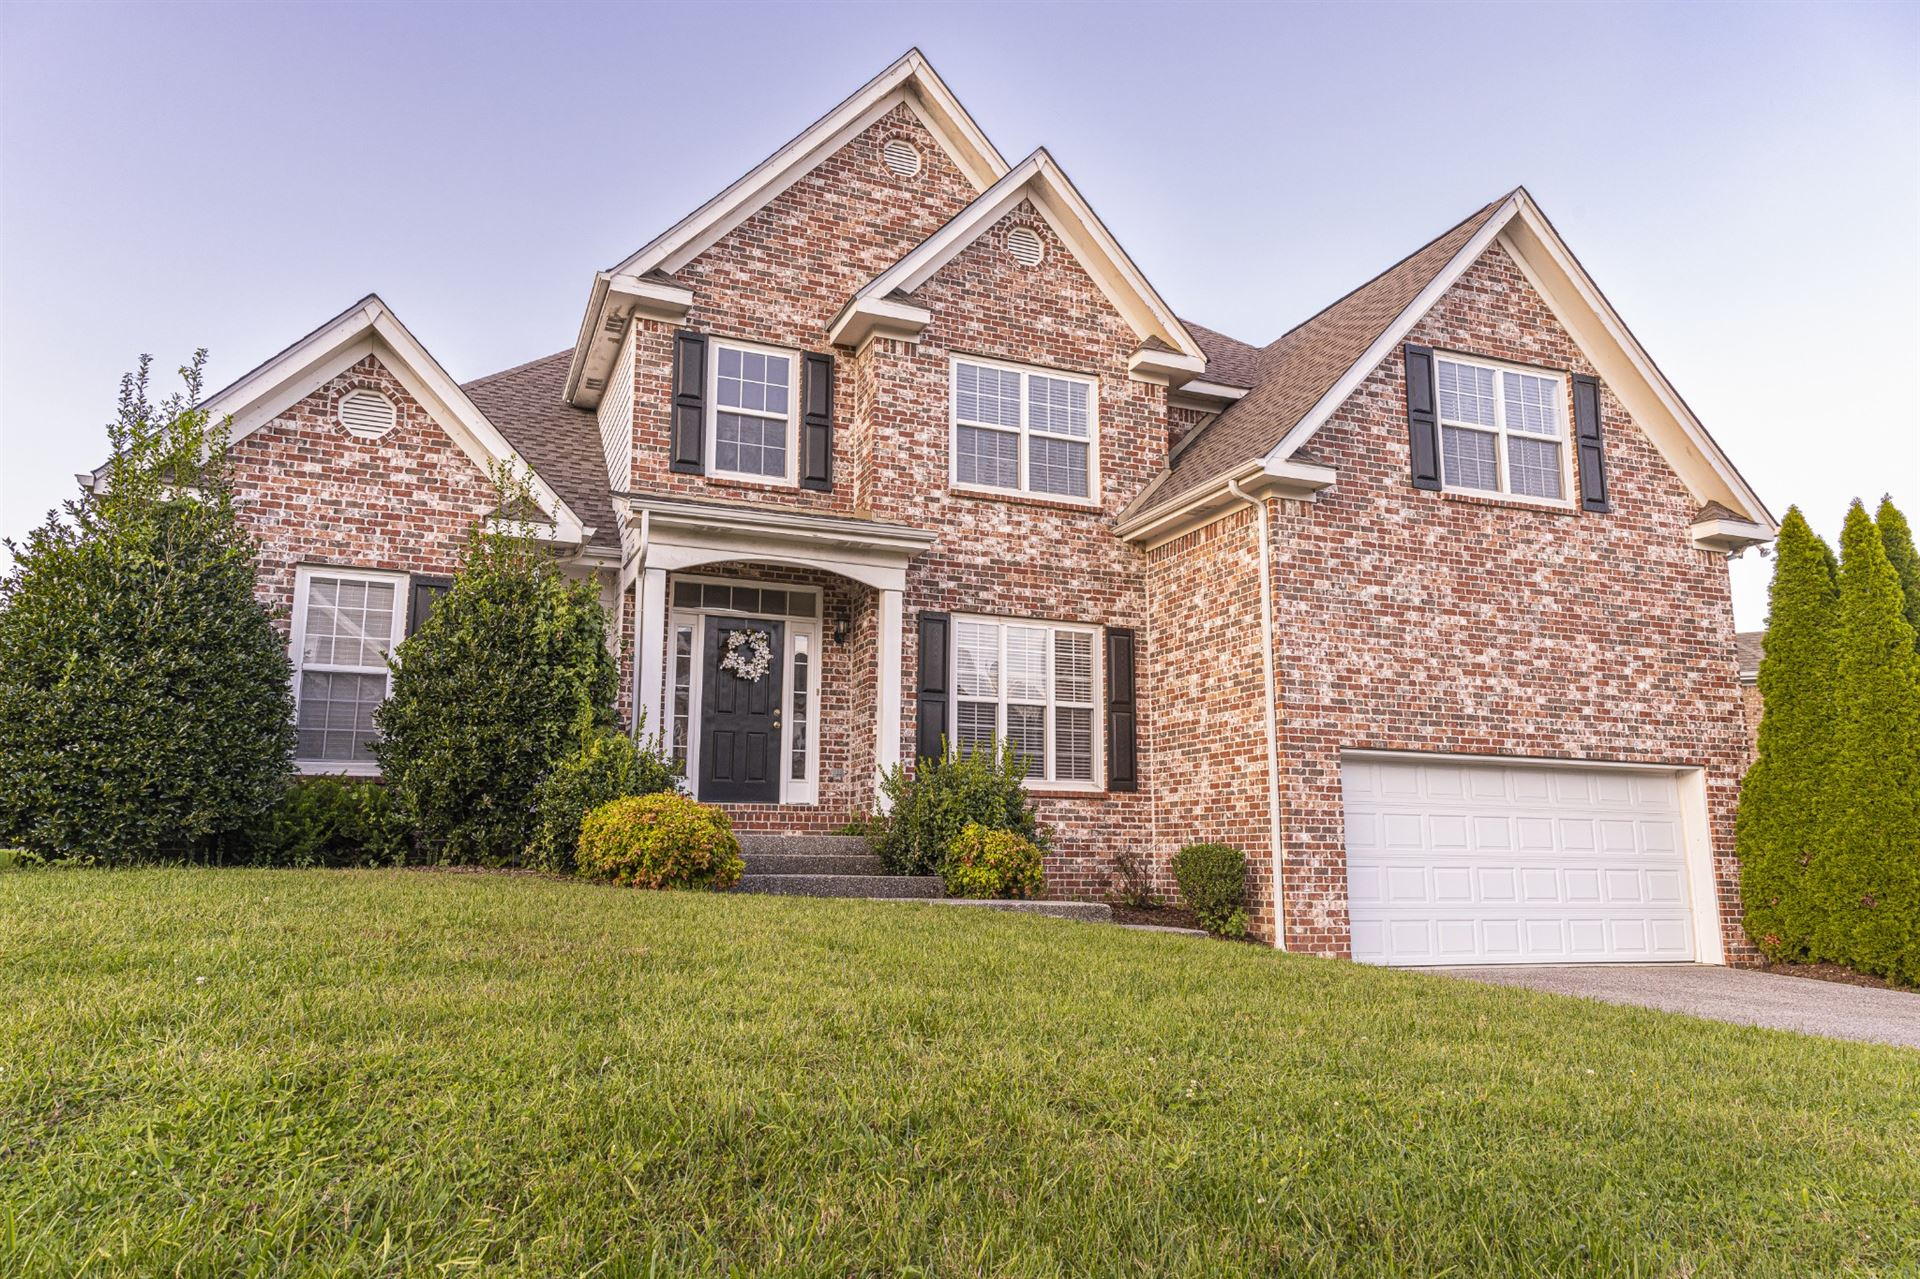 Photo of 1015 Belcor Dr, Spring Hill, TN 37174 (MLS # 2297879)